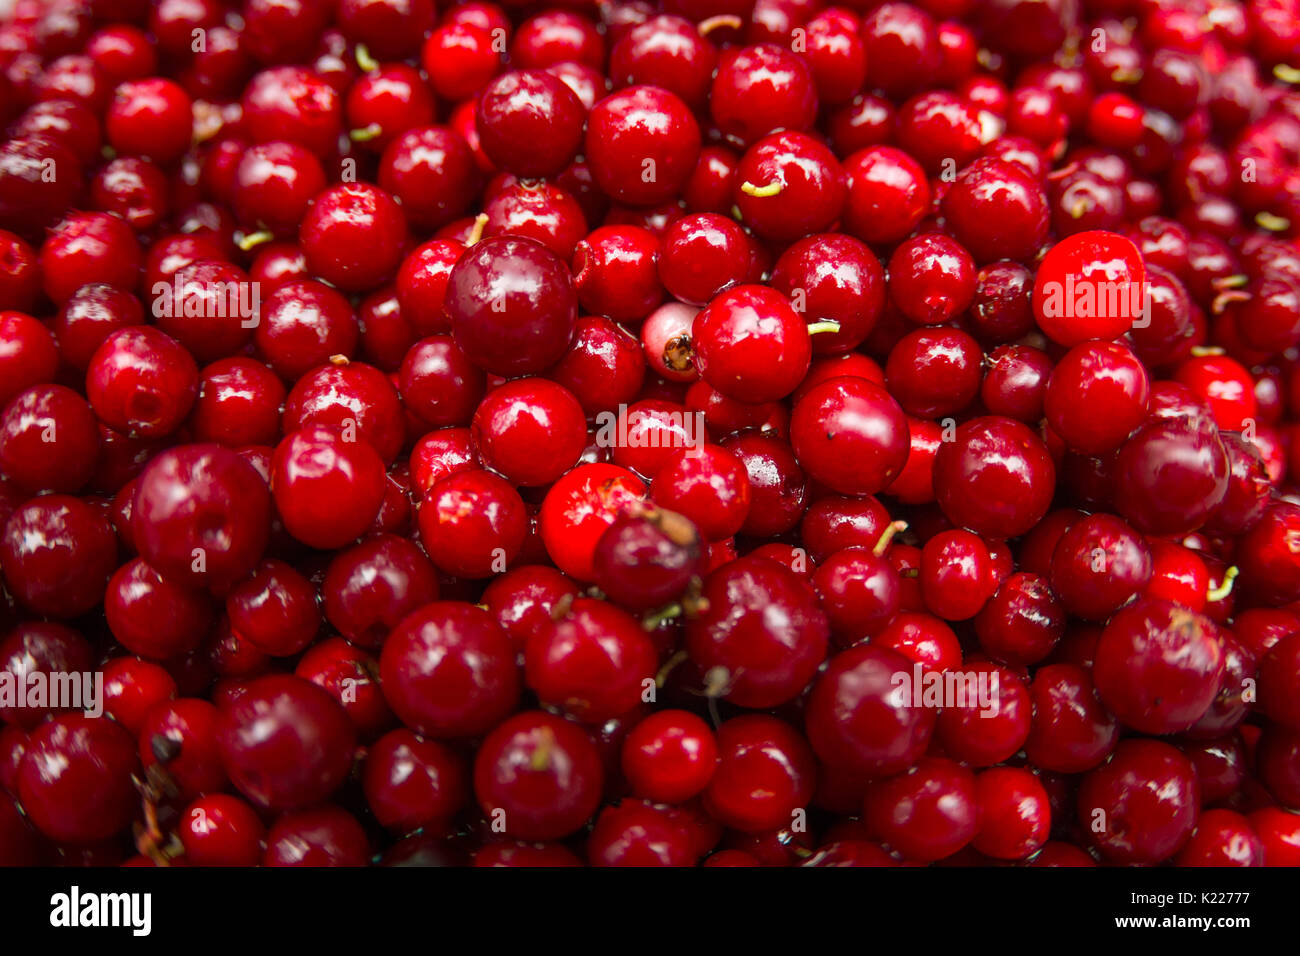 Cranberry or Cowberry background, Top macro view - Stock Image